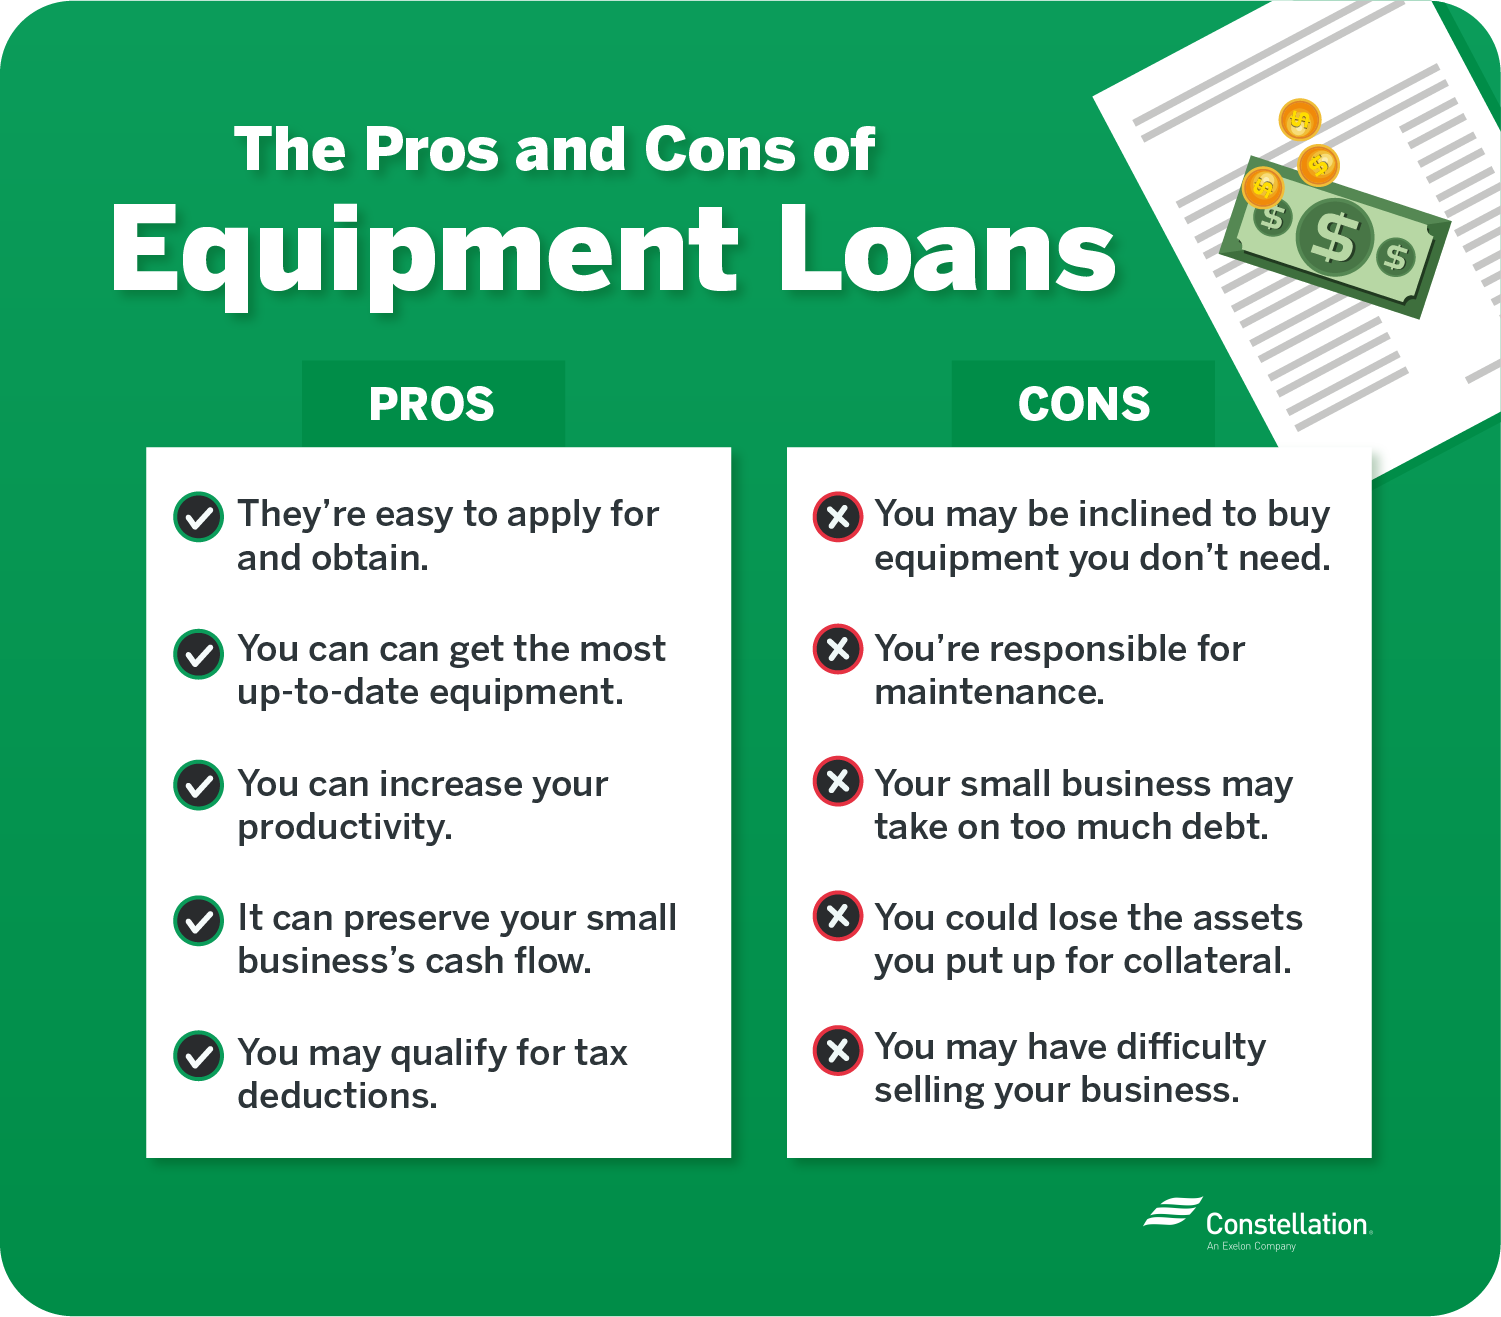 Pros and cons of financing your business's equipment